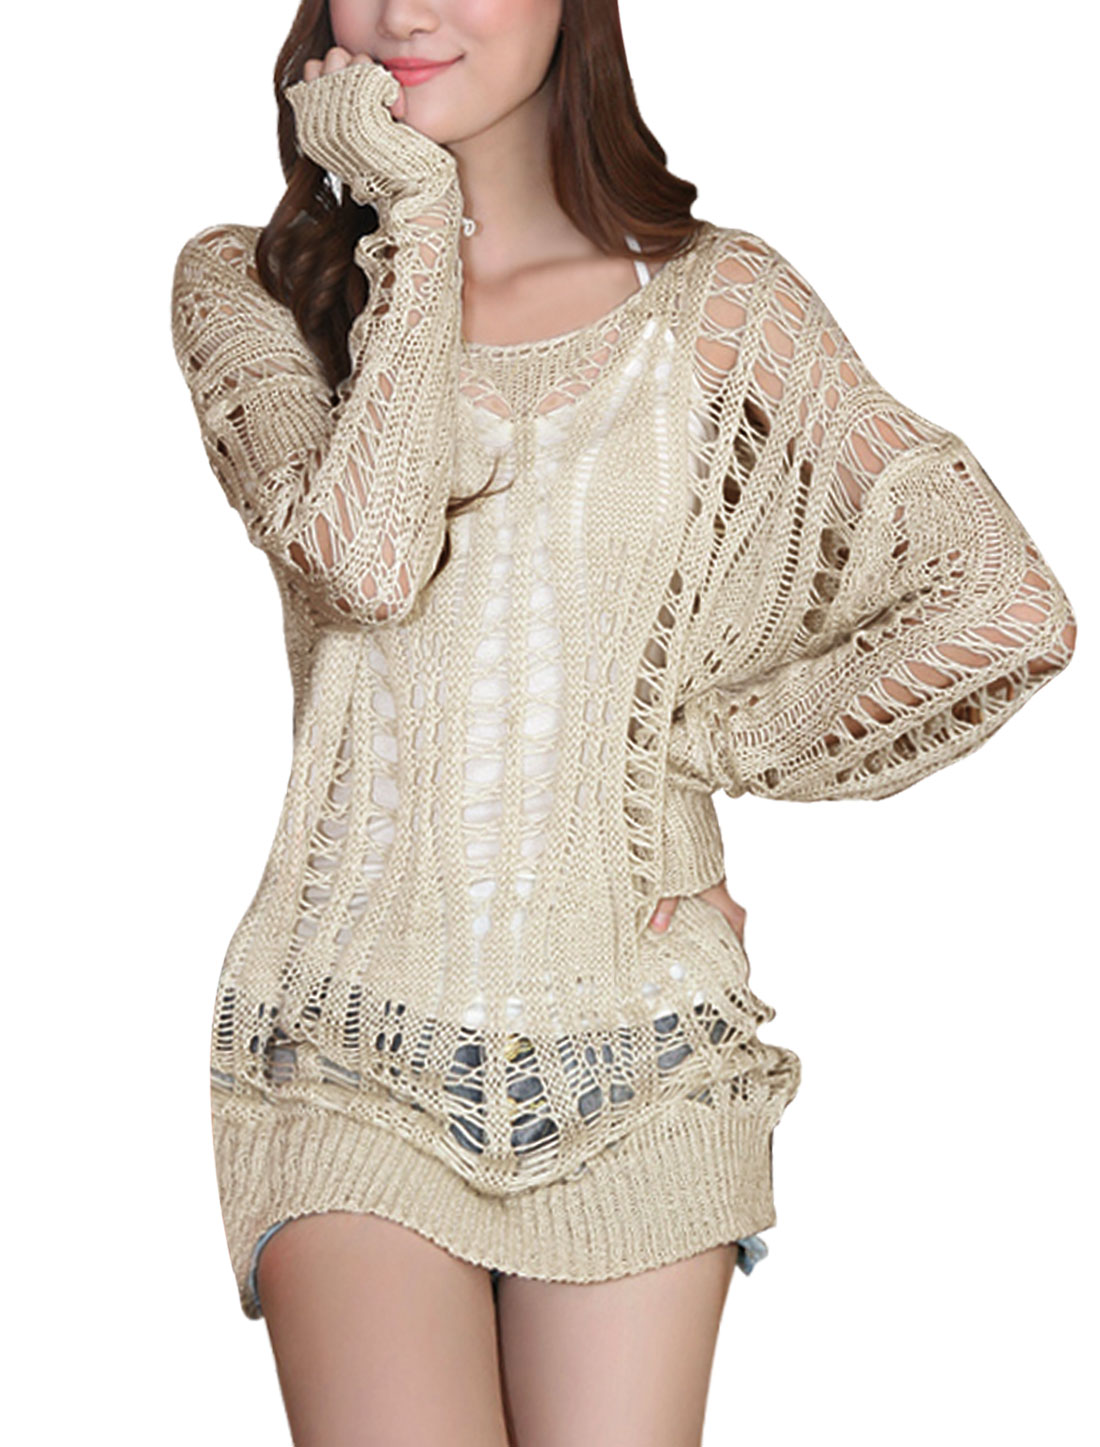 Ladies Pullover Stretchy Long Sleeve Beige Knitted Top M